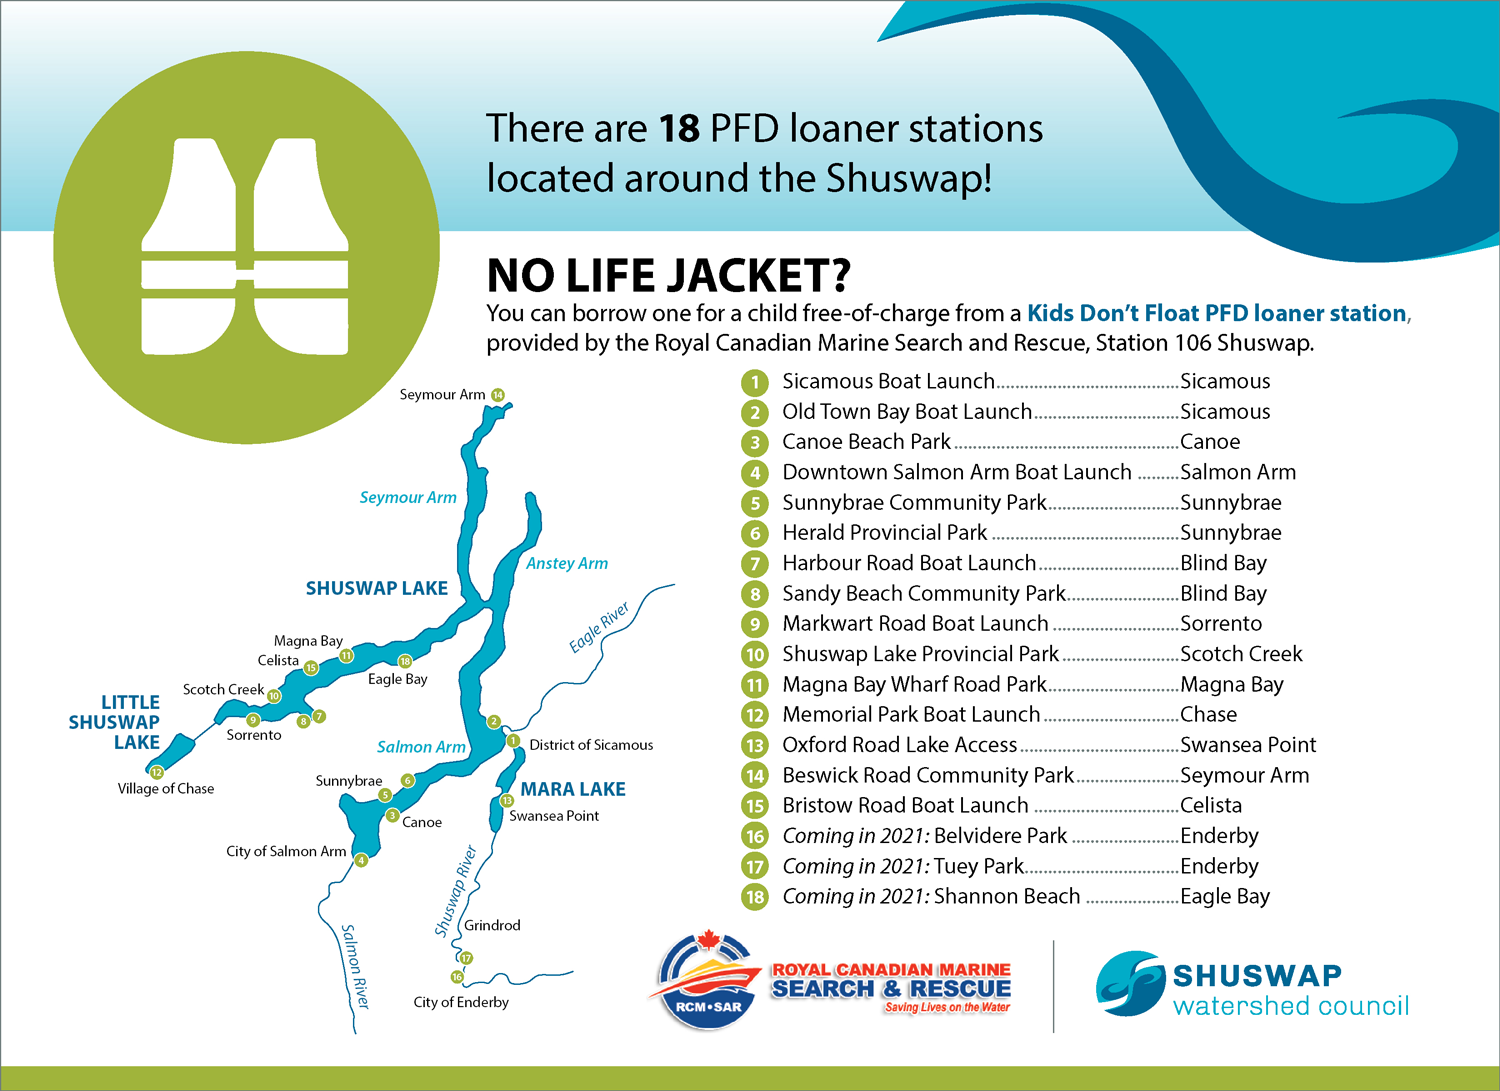 Map of PFD loaner stations in the Shuswap